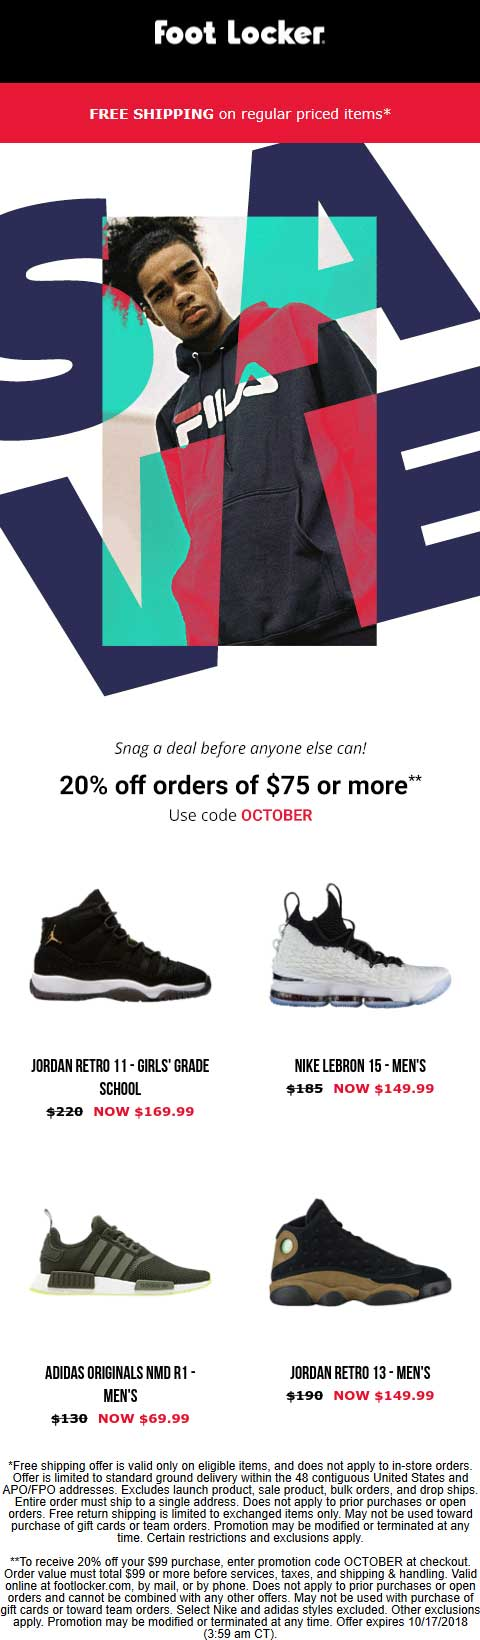 Foot Locker coupons & promo code for [February 2020]